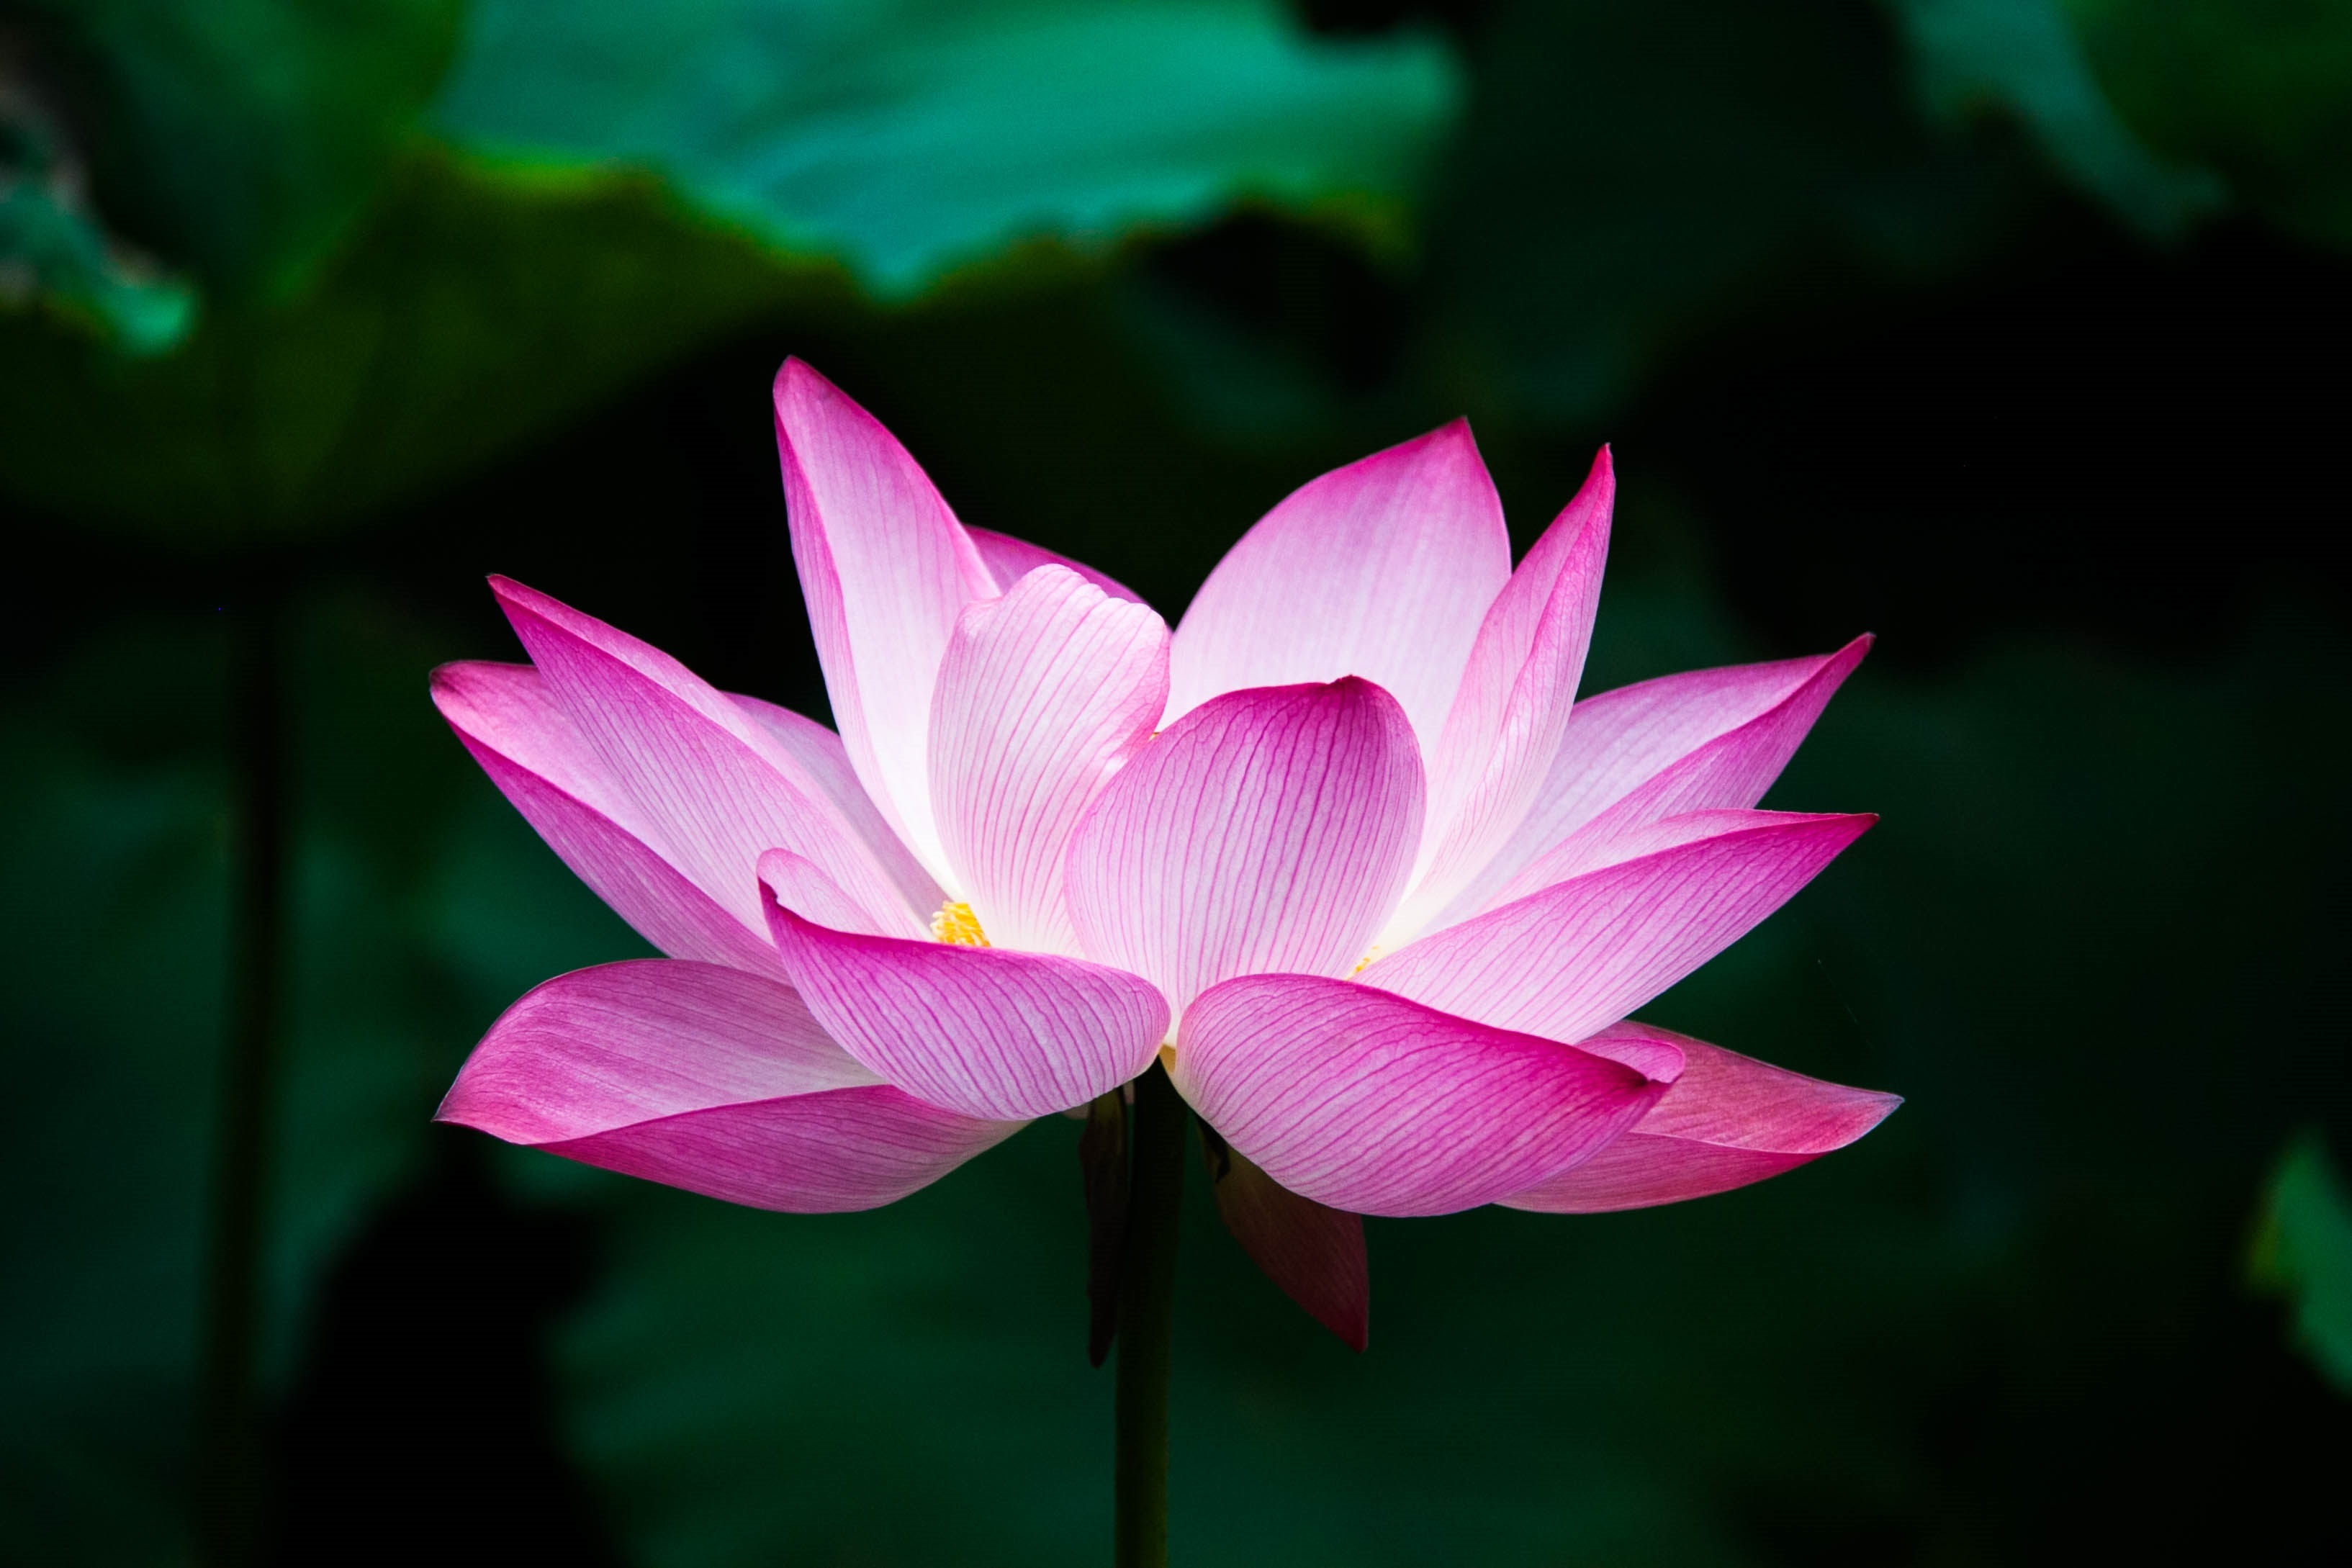 Lotus Flower 4k Hd Flowers 4k Wallpapers Images Backgrounds